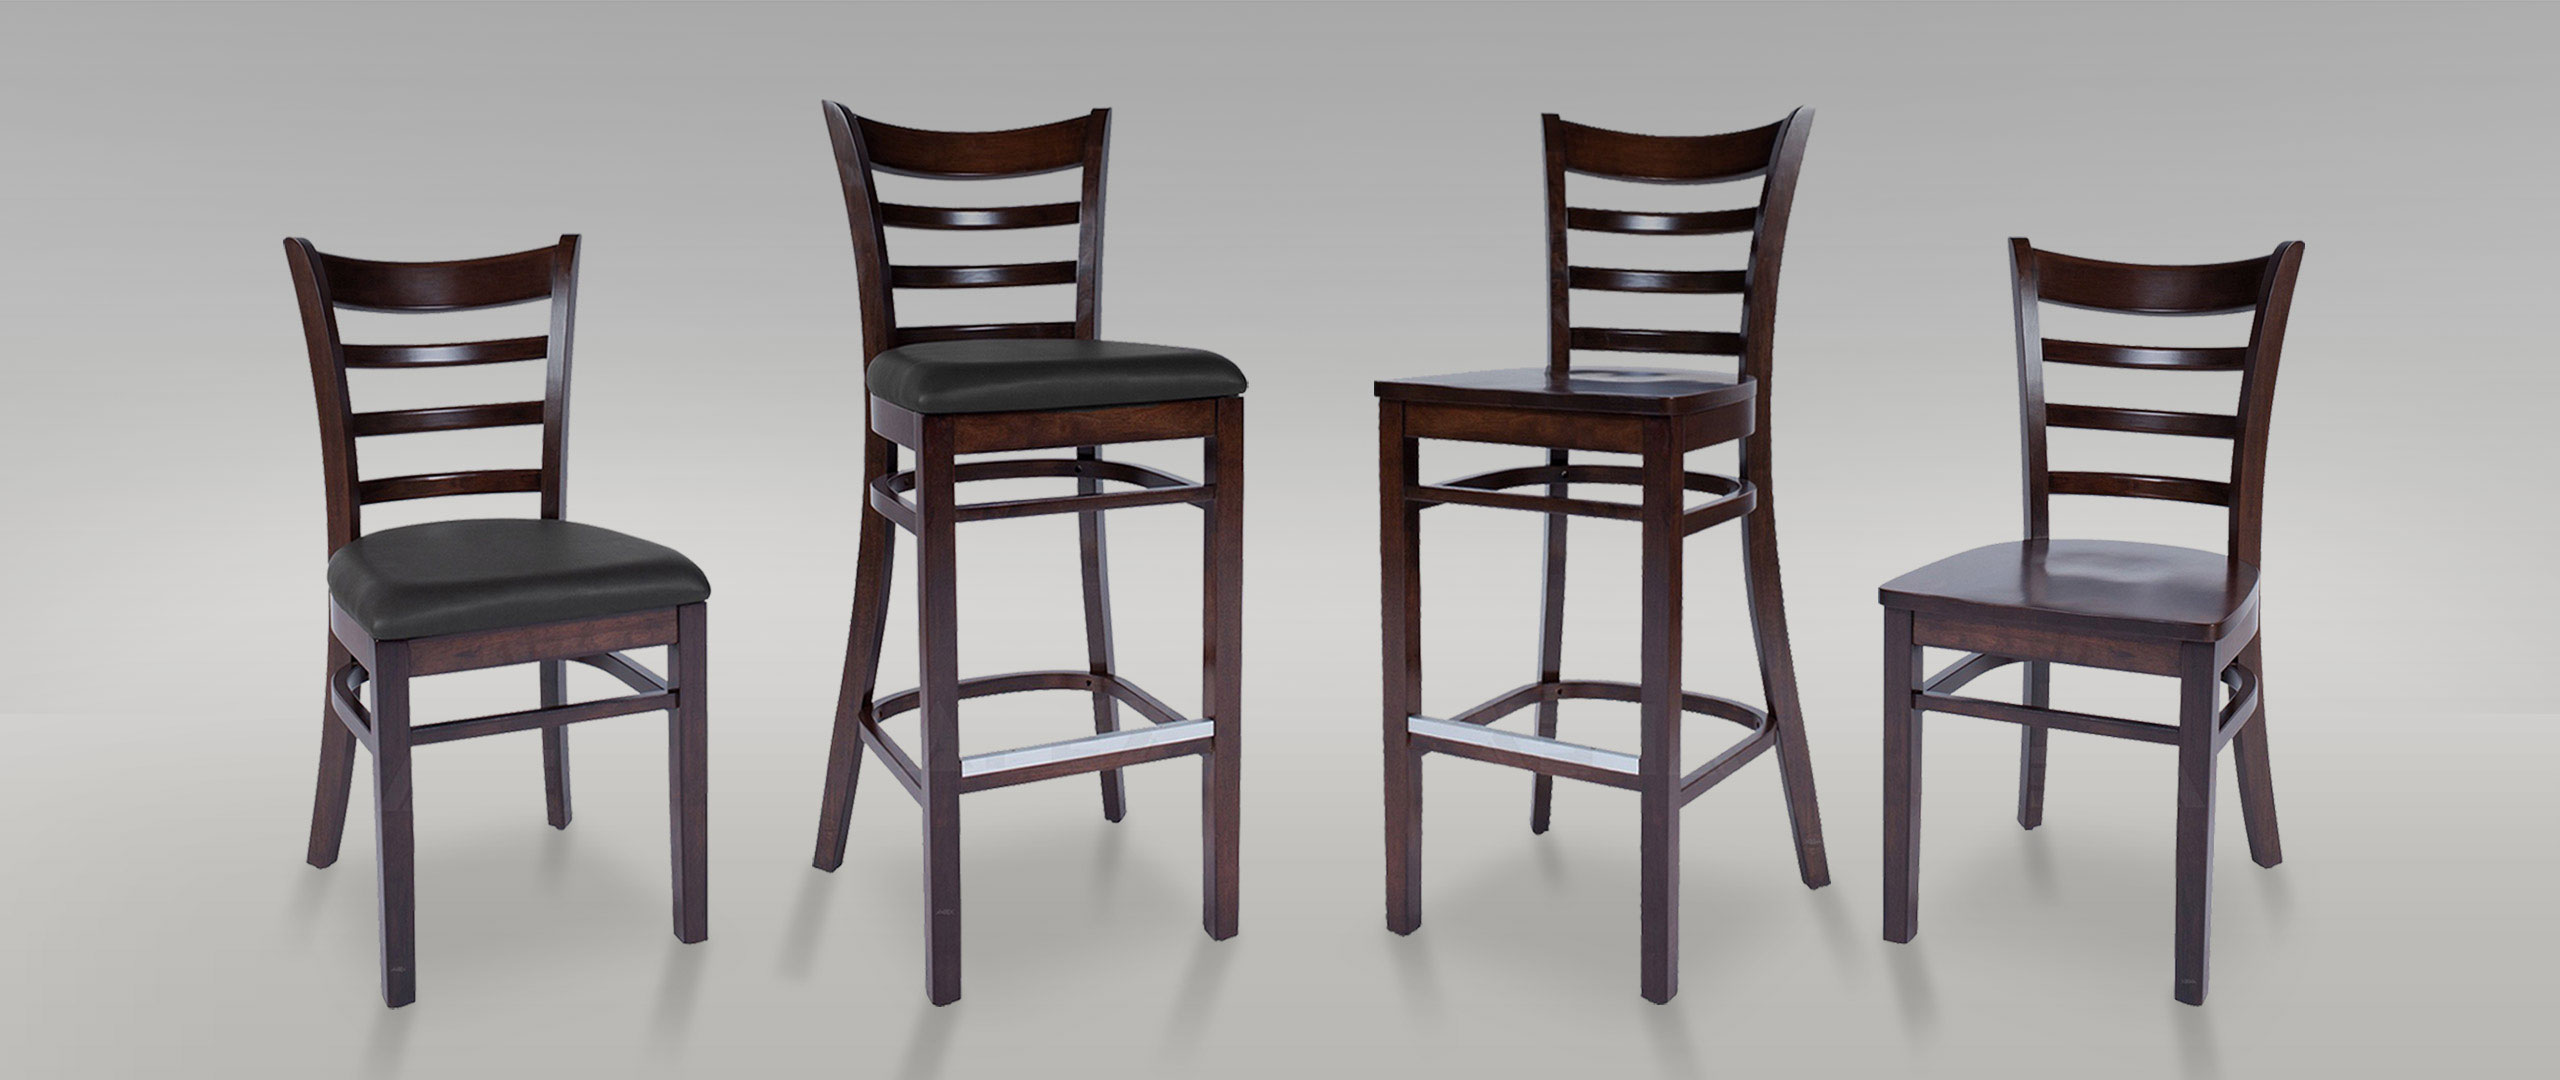 Wondrous Apex Furniture Commercial Cafe Chairs Tables Stools Download Free Architecture Designs Viewormadebymaigaardcom